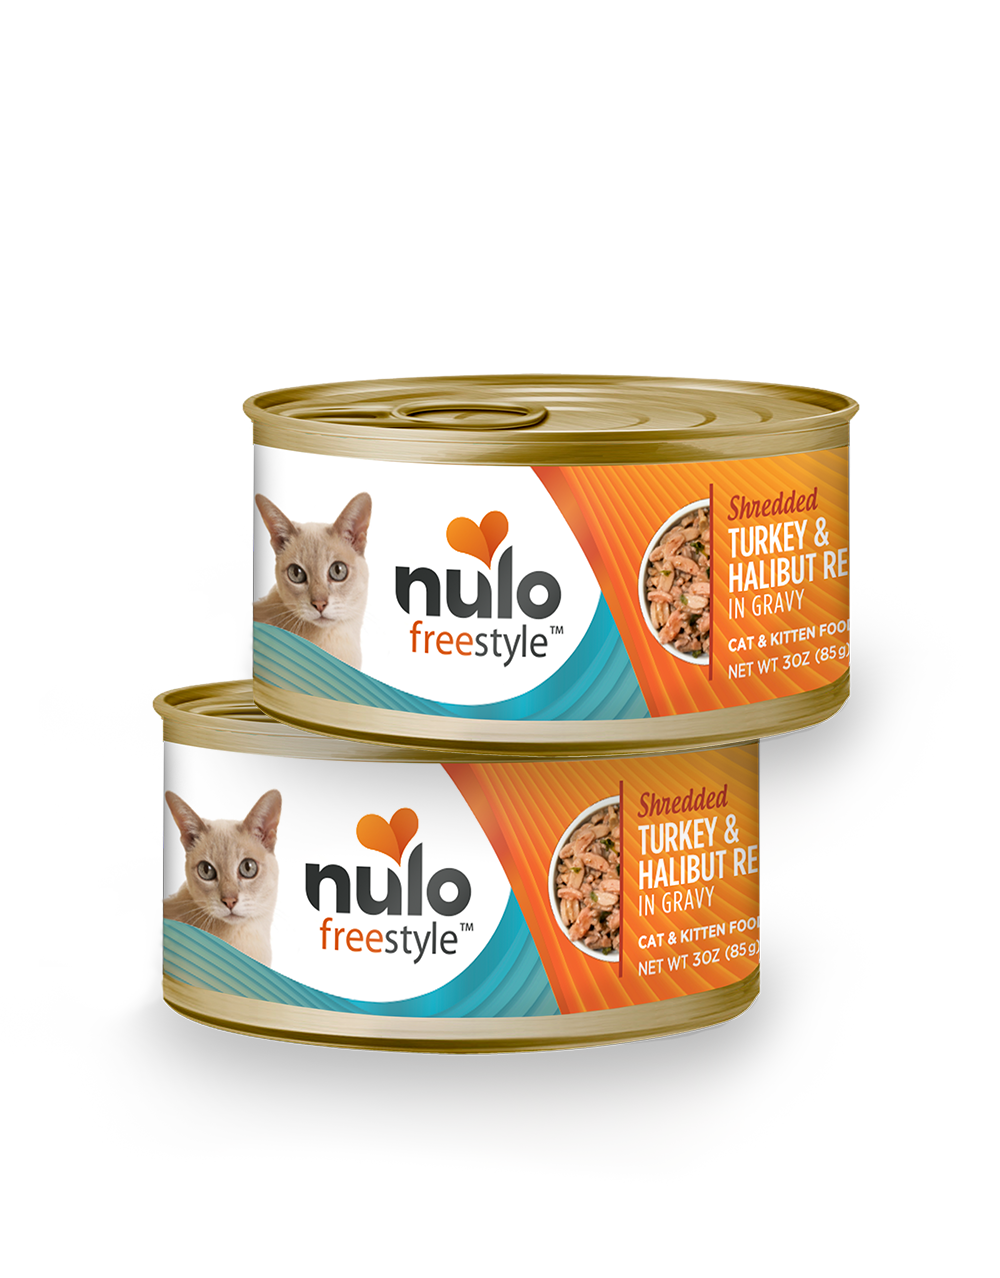 Nulo freestyle 3oz cat cans Turkey&Halibut